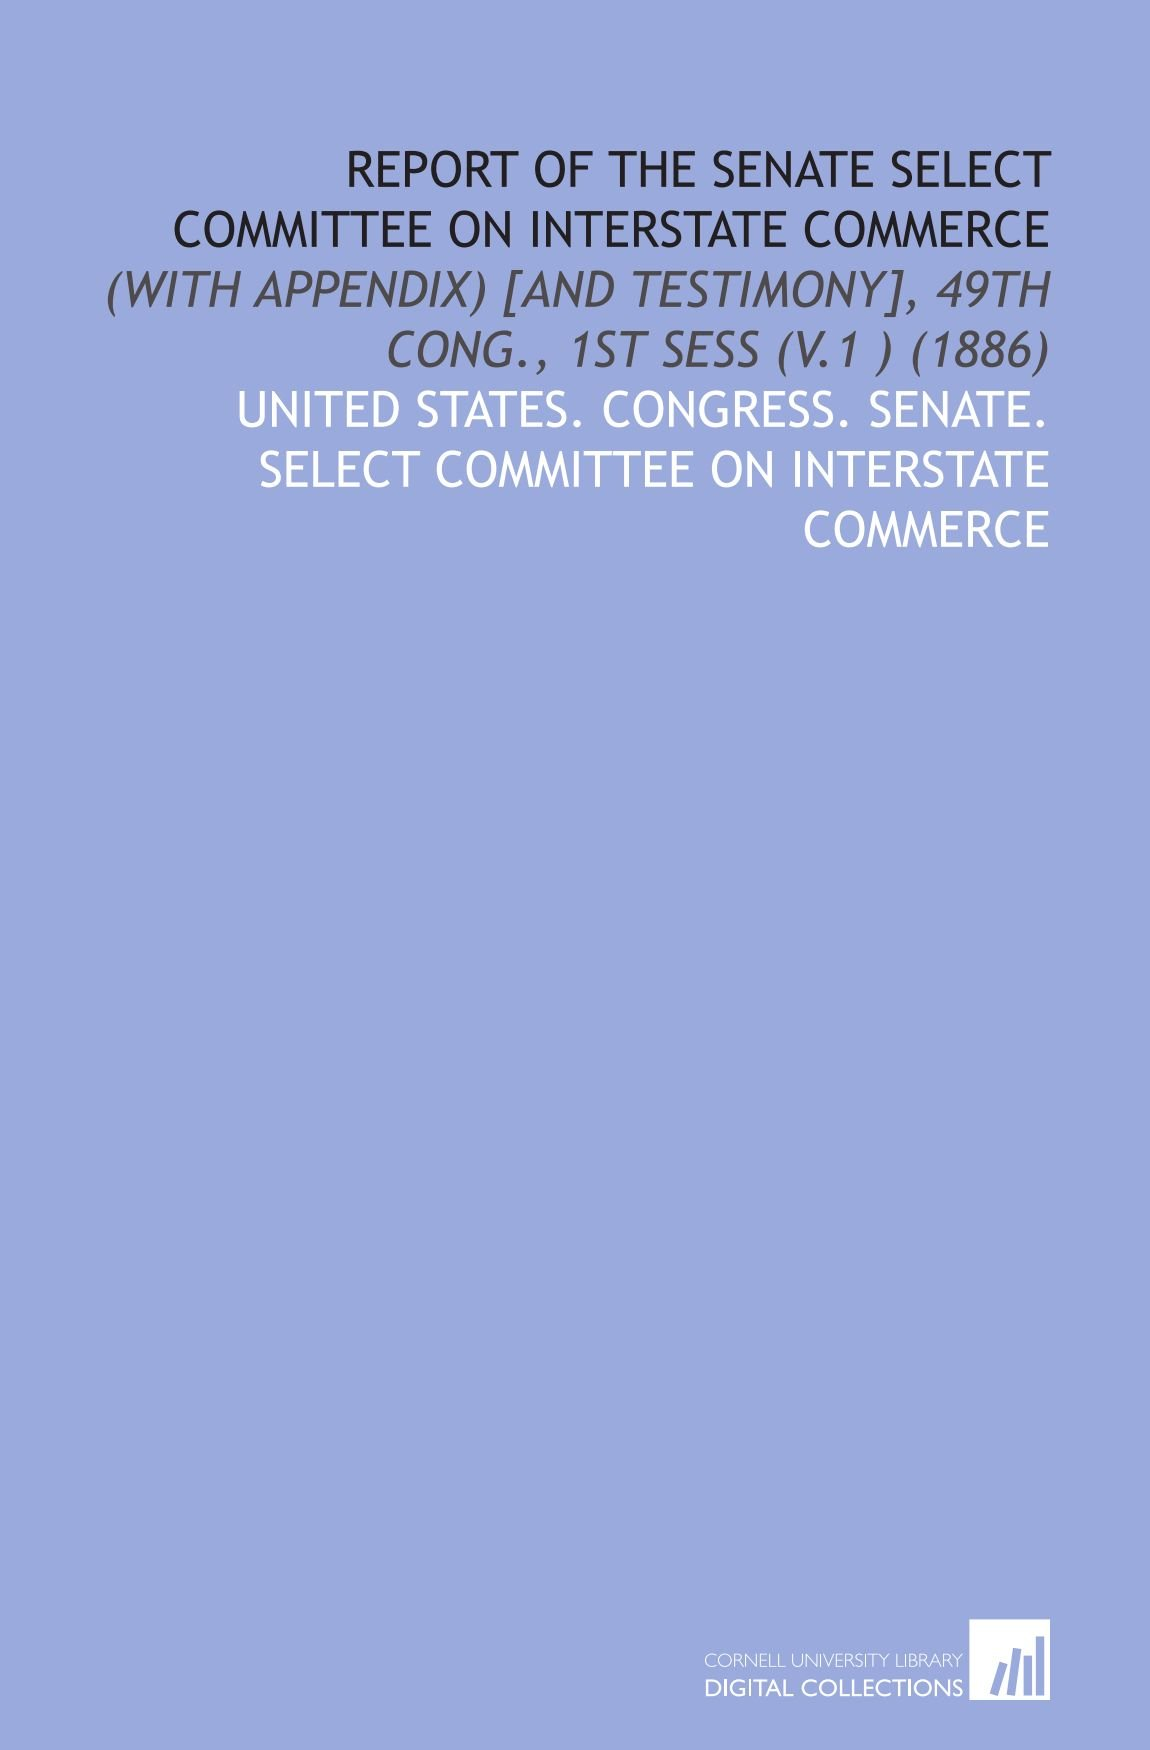 Download Report of the Senate Select Committee on Interstate Commerce: (With Appendix) [and Testimony], 49th Cong., 1st Sess (V.1 ) (1886) pdf epub